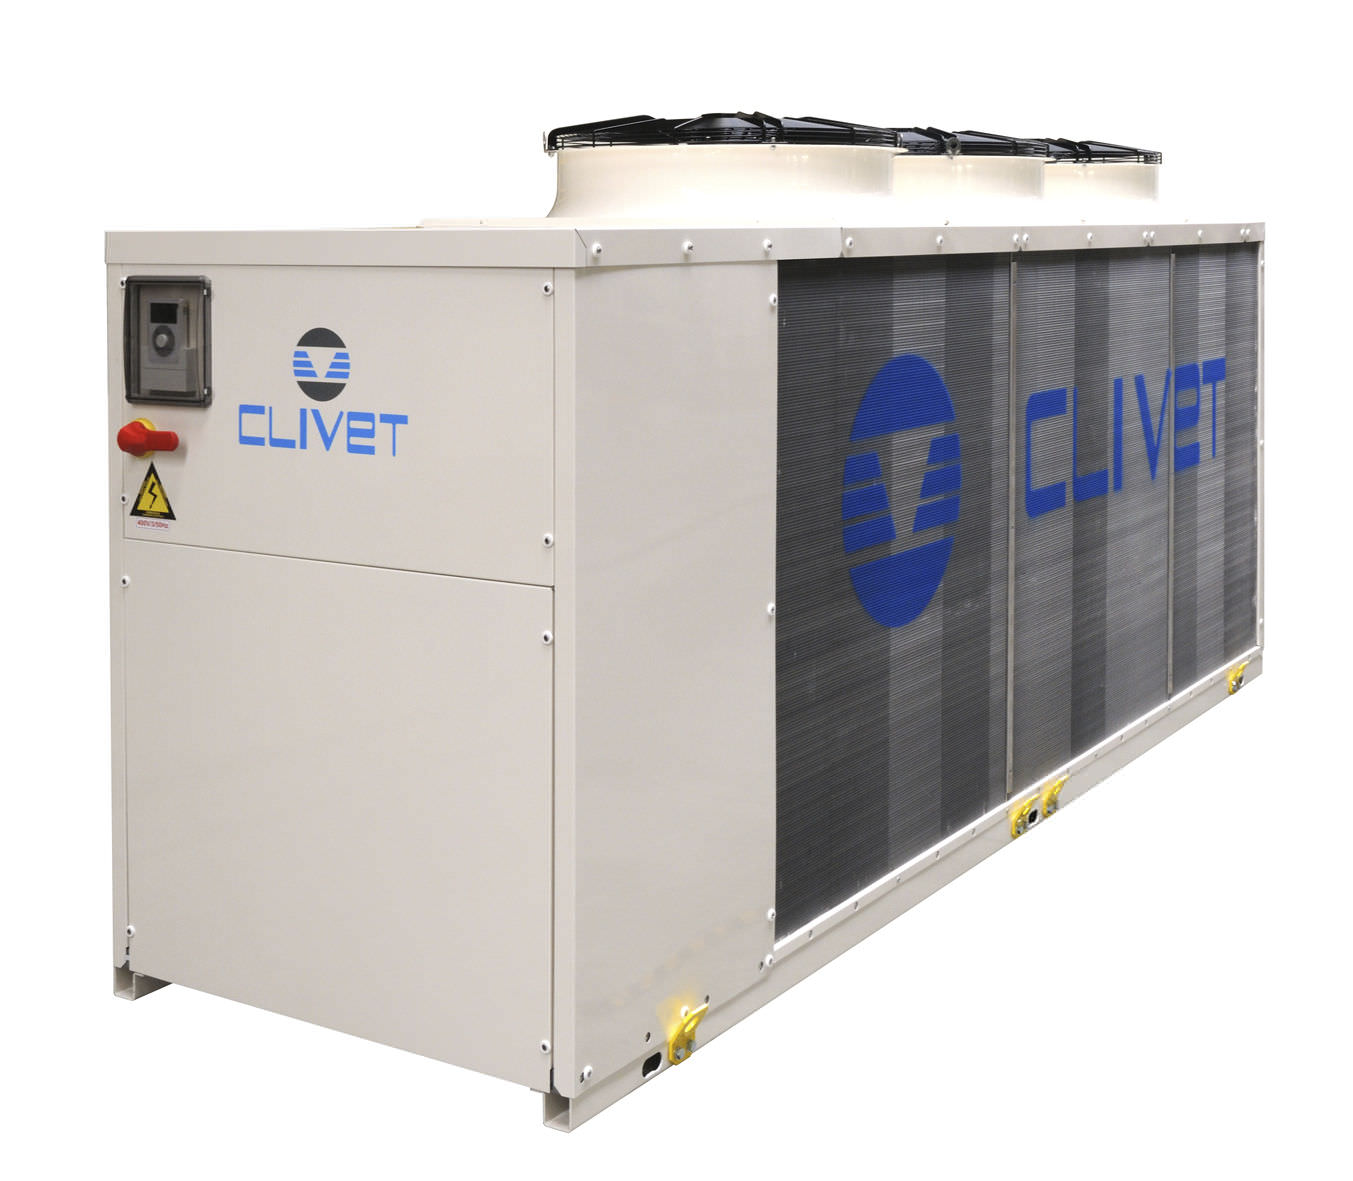 Air/water cooled chiller ELFOENERGY LARGE2 Clivet #385493